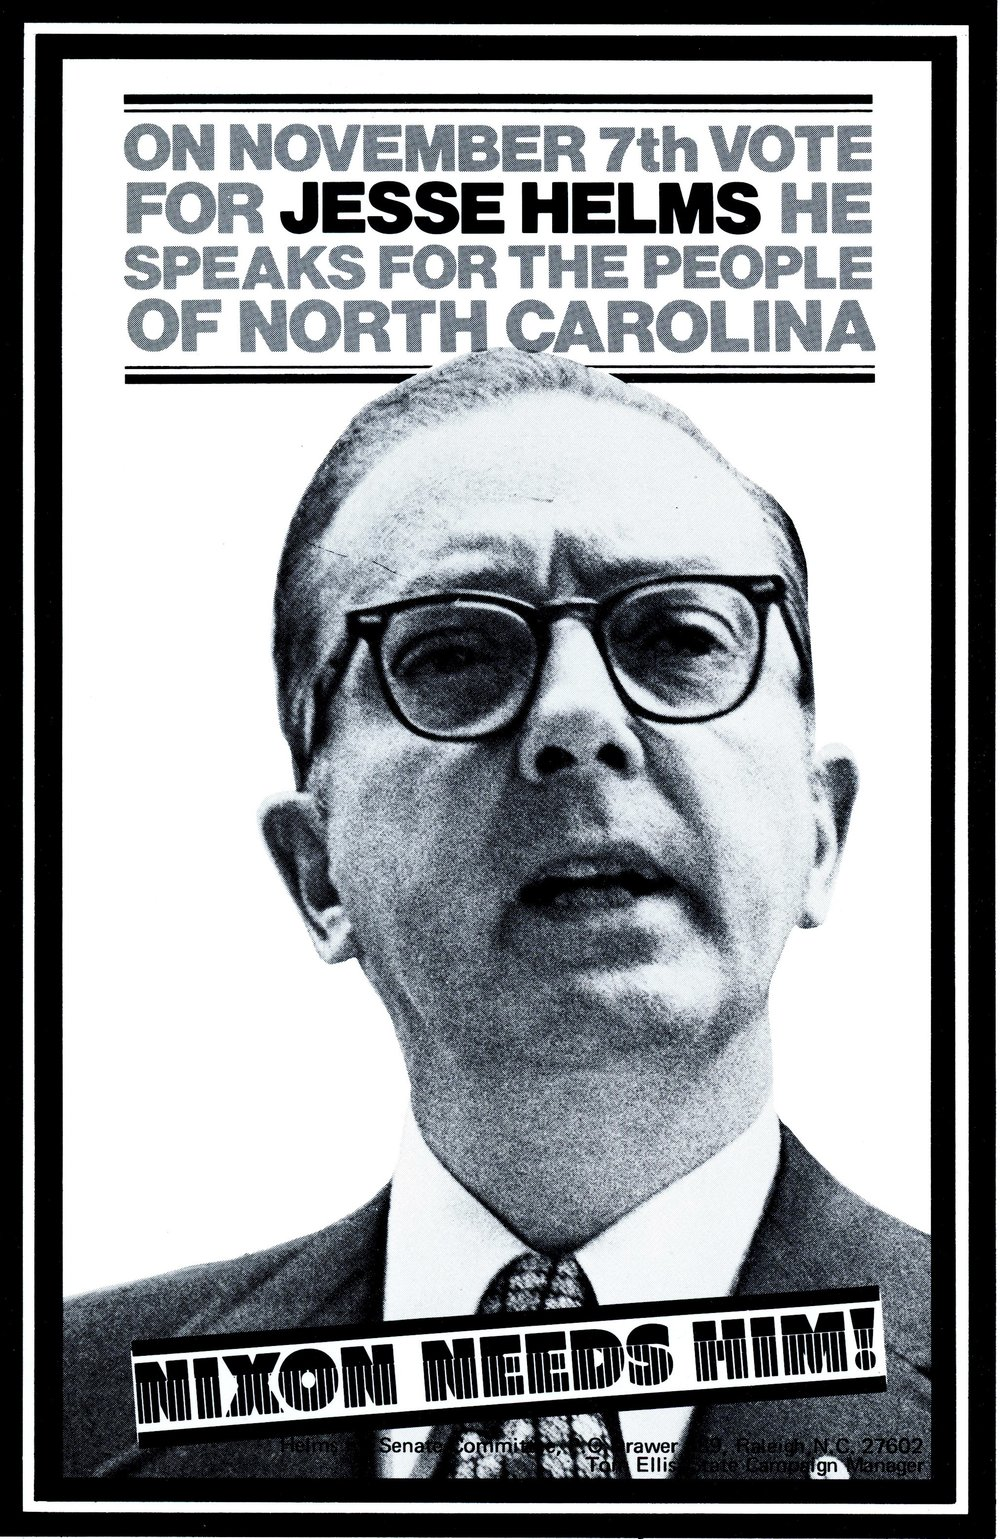 One of the campaign flyers from Jesse Helms' 1972 Senate race.